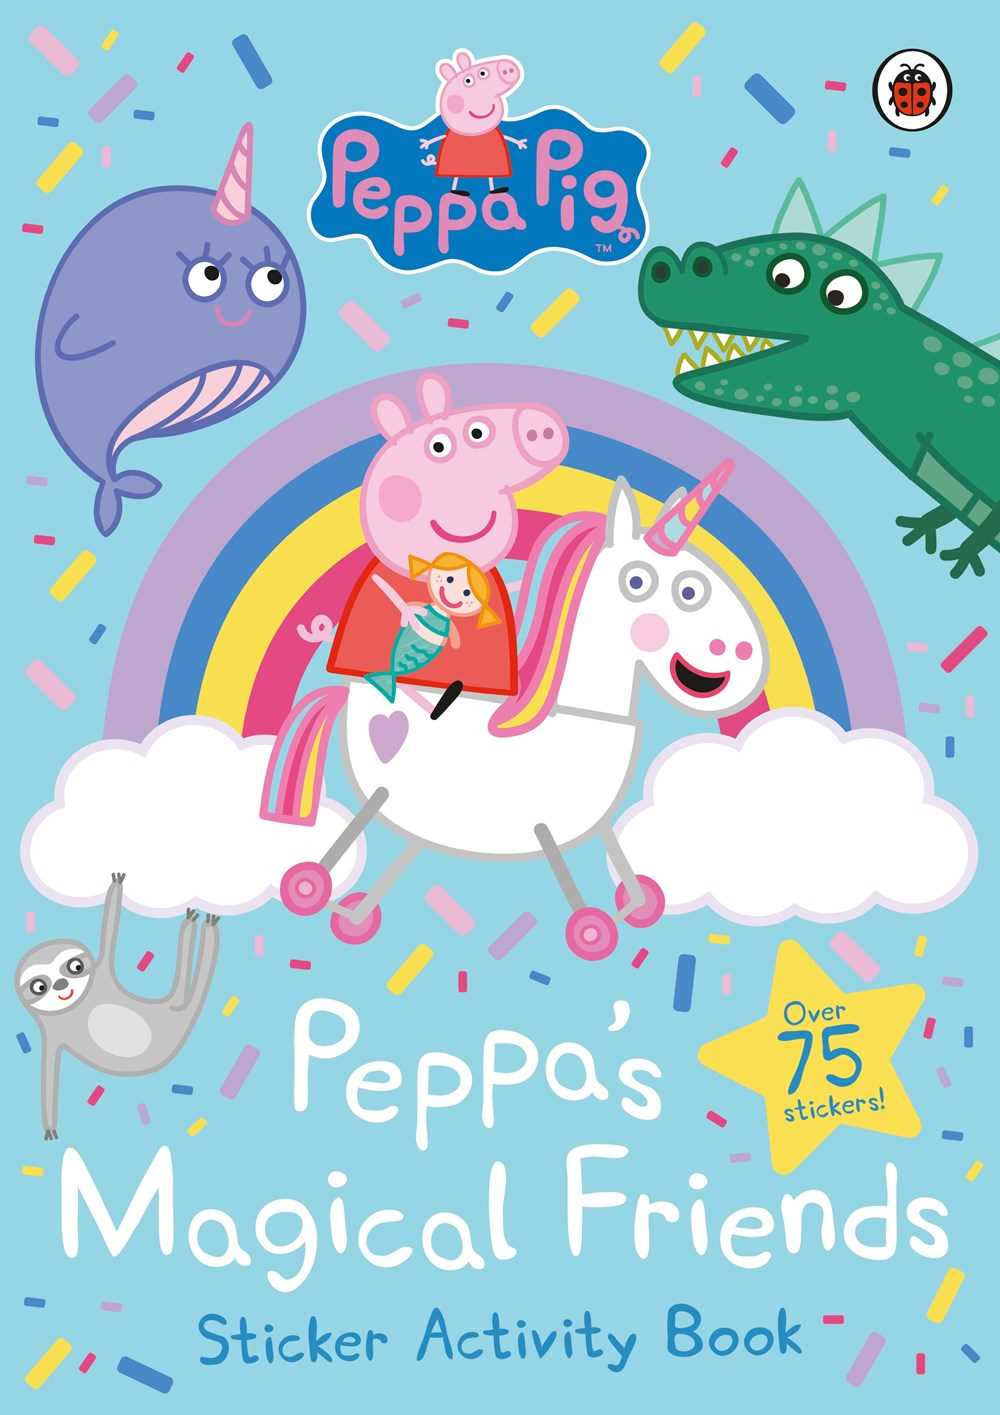 Peppa's Magical Friends Sticker Activity